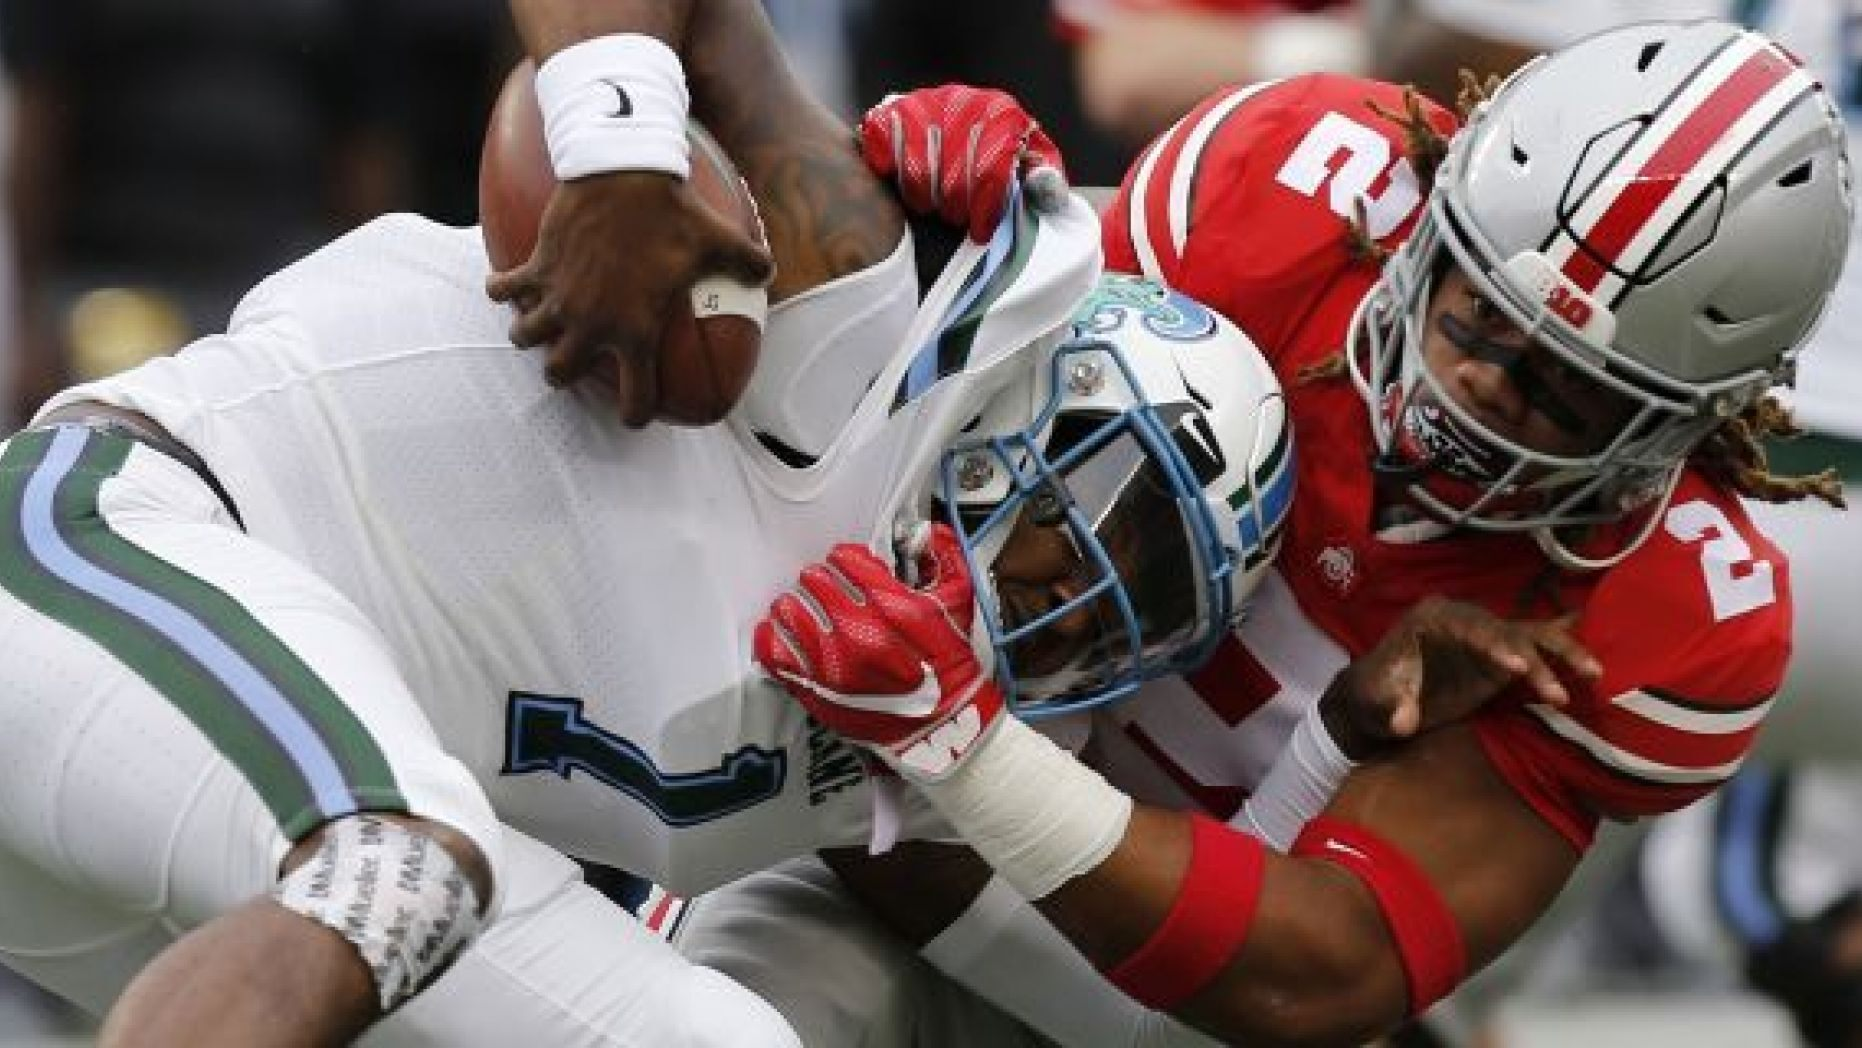 FILE - In this Sept. 22, 2018, file photo, Ohio State defensive end Chase Young, right, sacks Tulane quarterback Jonathan Banks during the first half of an NCAA college football game, in Columbus, Ohio. Chase Young is known to lead with his mouth. Being the loudest Buckeye on the field is part of the reason his teammates elected him a captain this season. (AP Photo/Jay LaPrete, File)